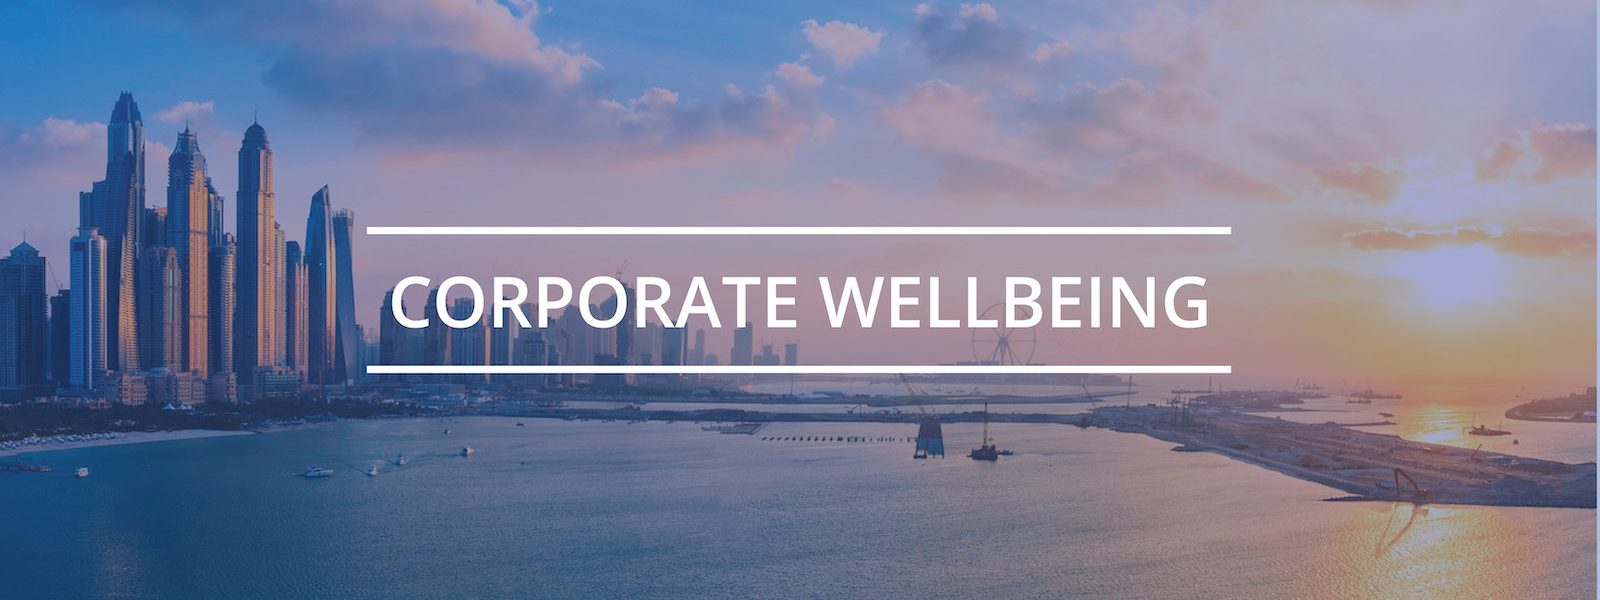 corporate health and wellbeing consultations workshops courses help